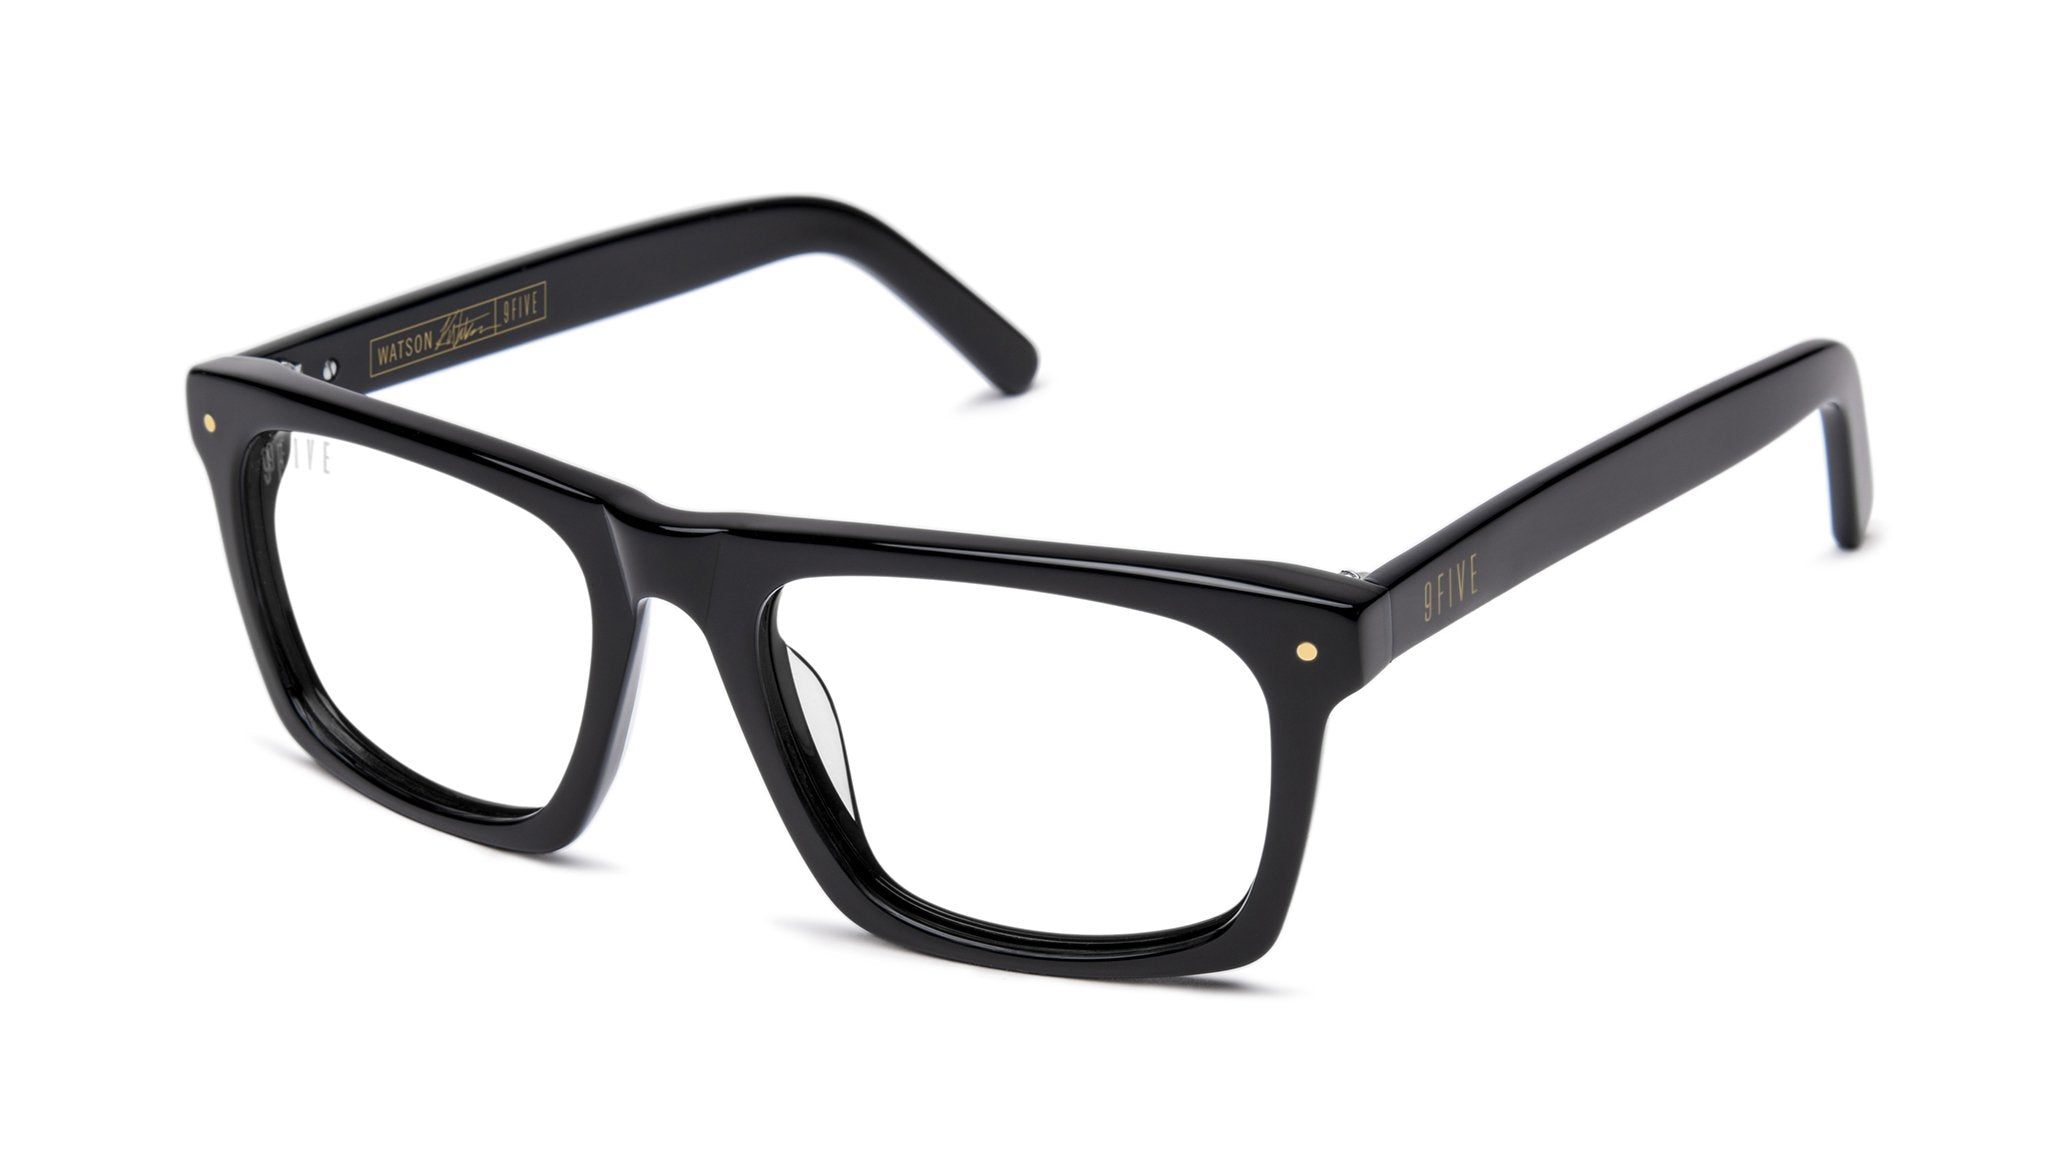 9FIVE - Watson 53mm Black Eyeglasses / Demo Lenses